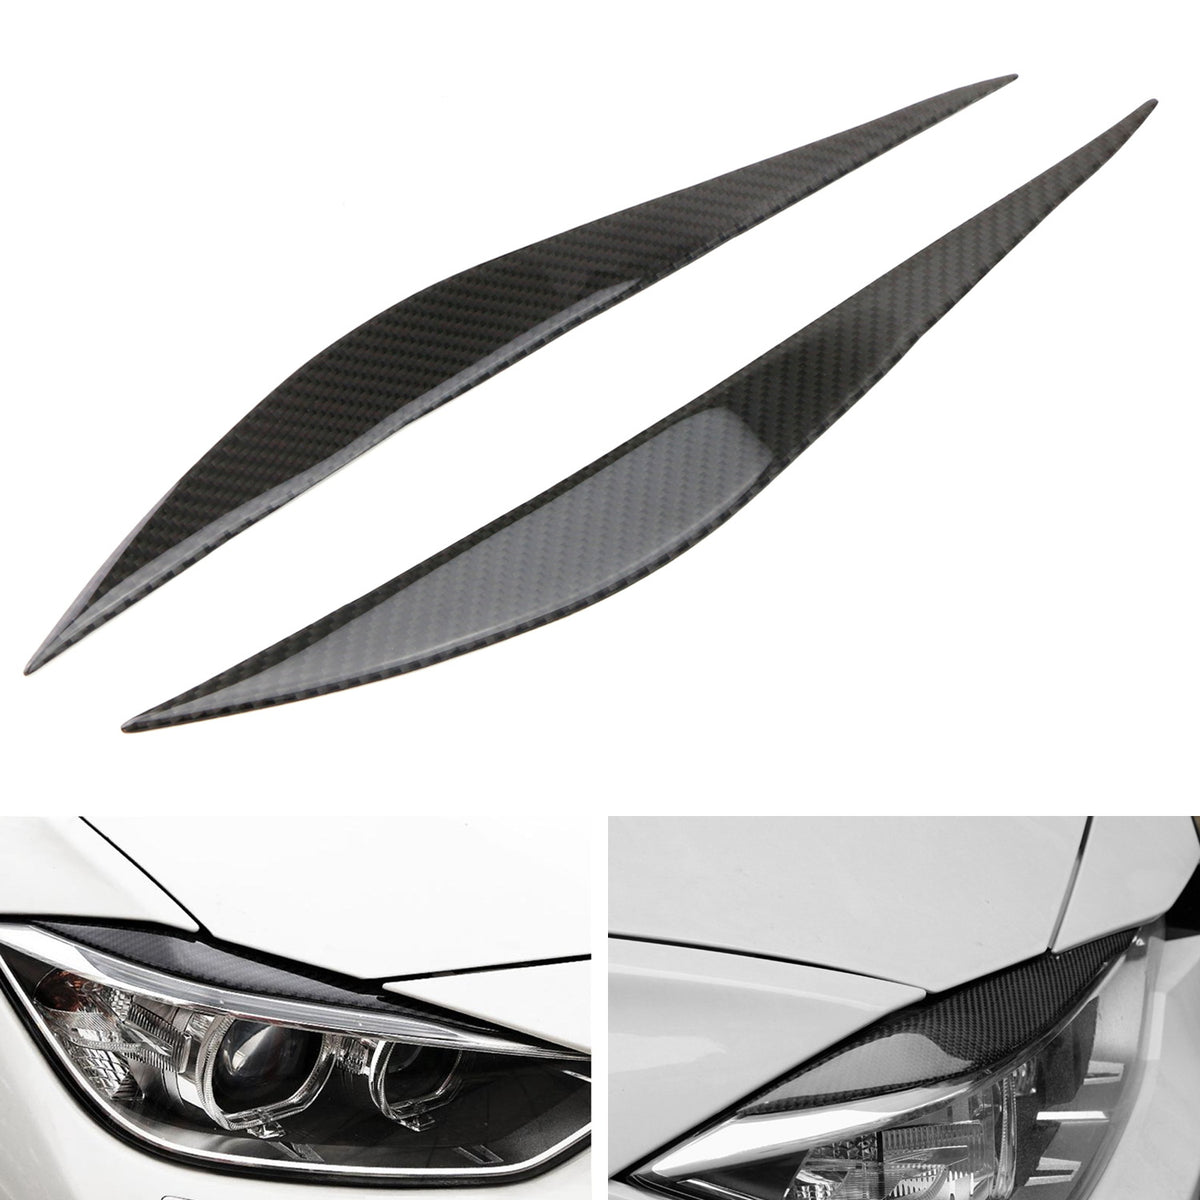 ALBBMY Auto Parts 1pcs Car Front Headlight Lens Cover Fit For BMW F30 F31 3 Series 2013-2015 Auto Lampshade Headlamp Lens Cover Color : Left